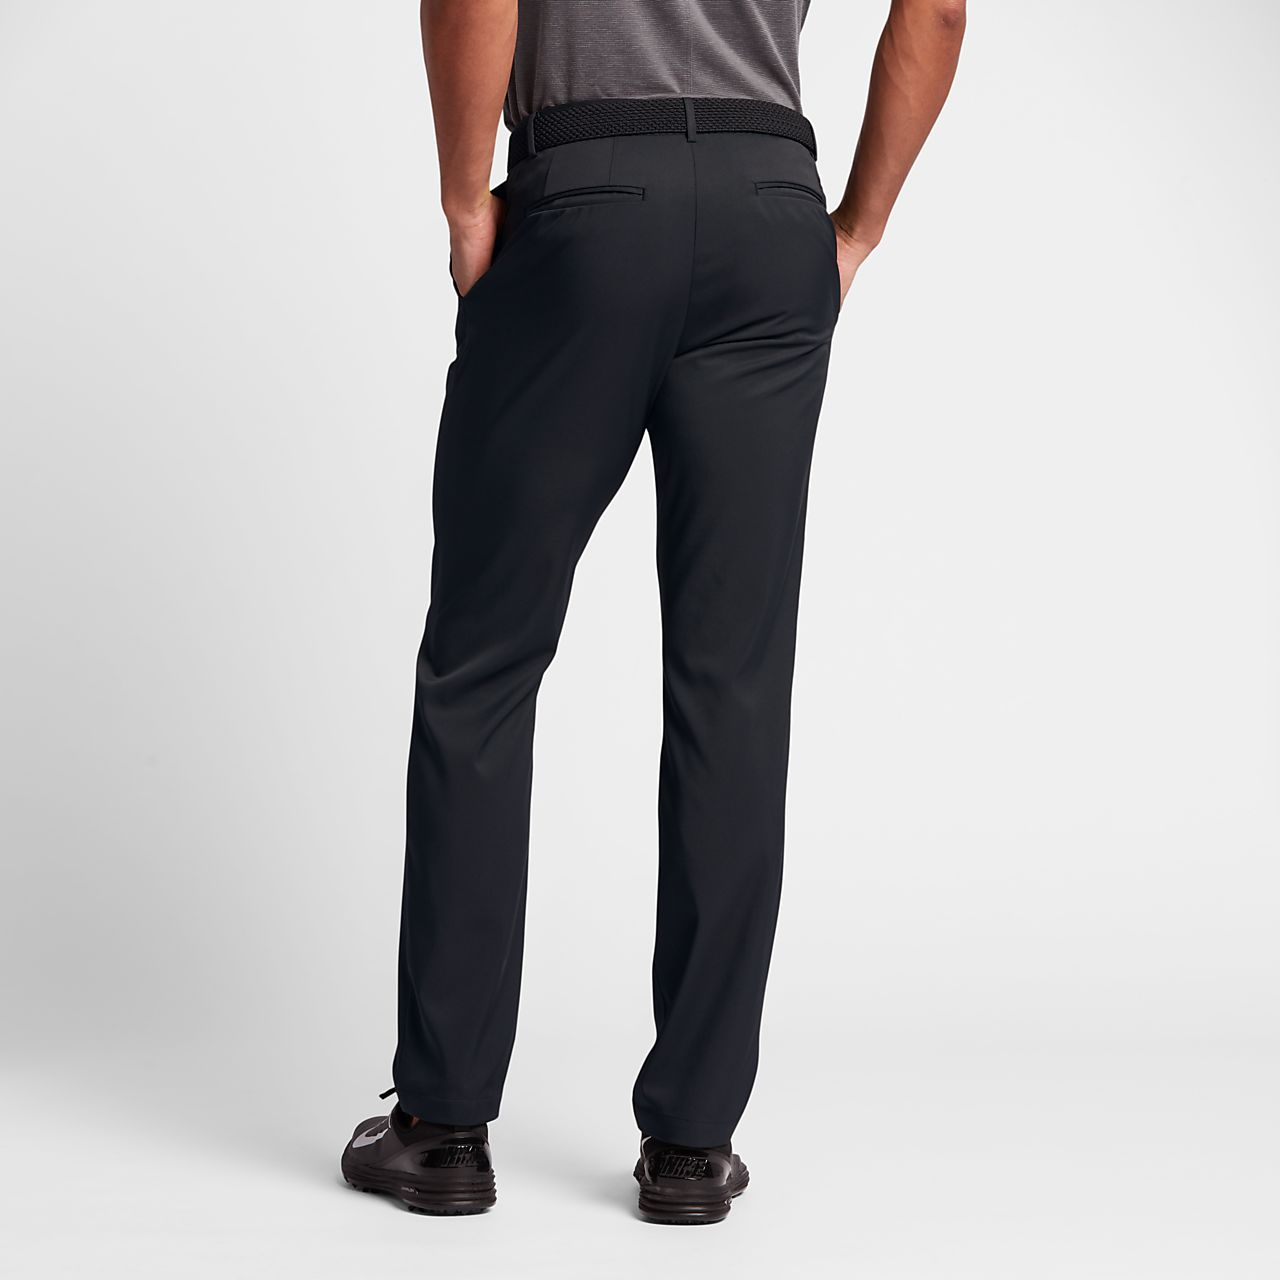 ... Nike Modern Fit Chino Men's Golf Trousers